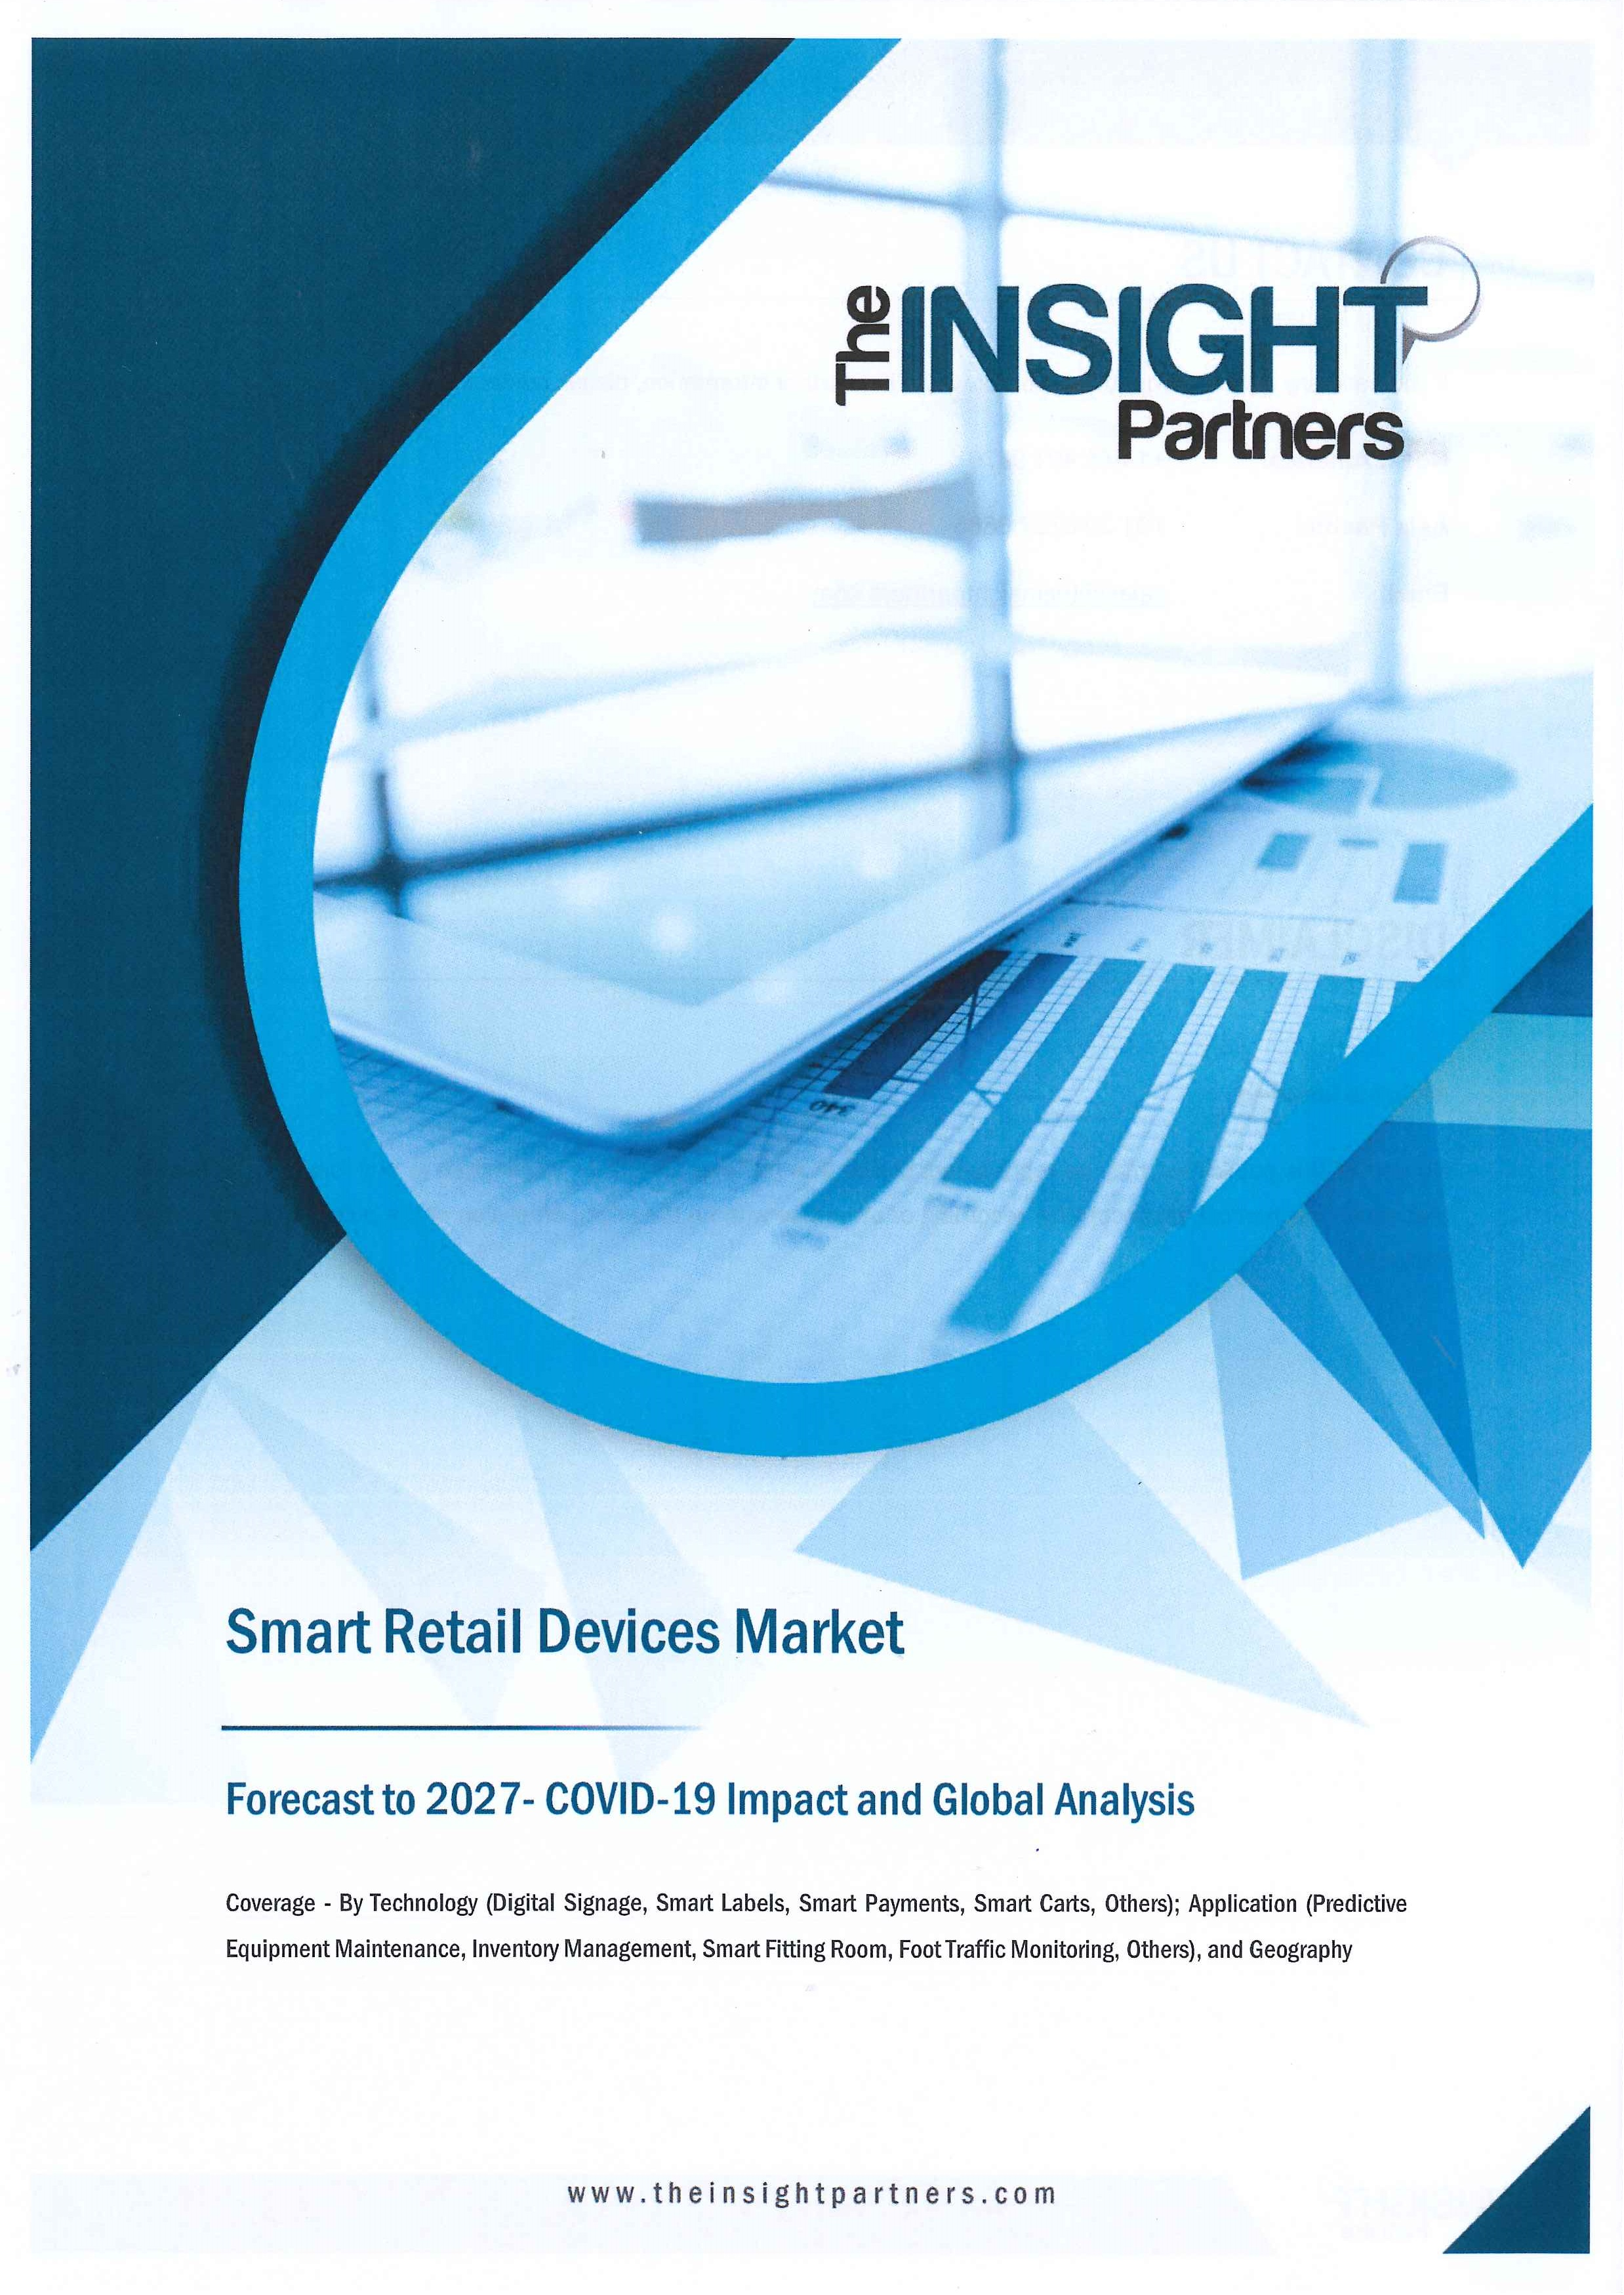 Smart retail devices market [e-book]:forecast to 2027 - COVID-19 impact and global analysis